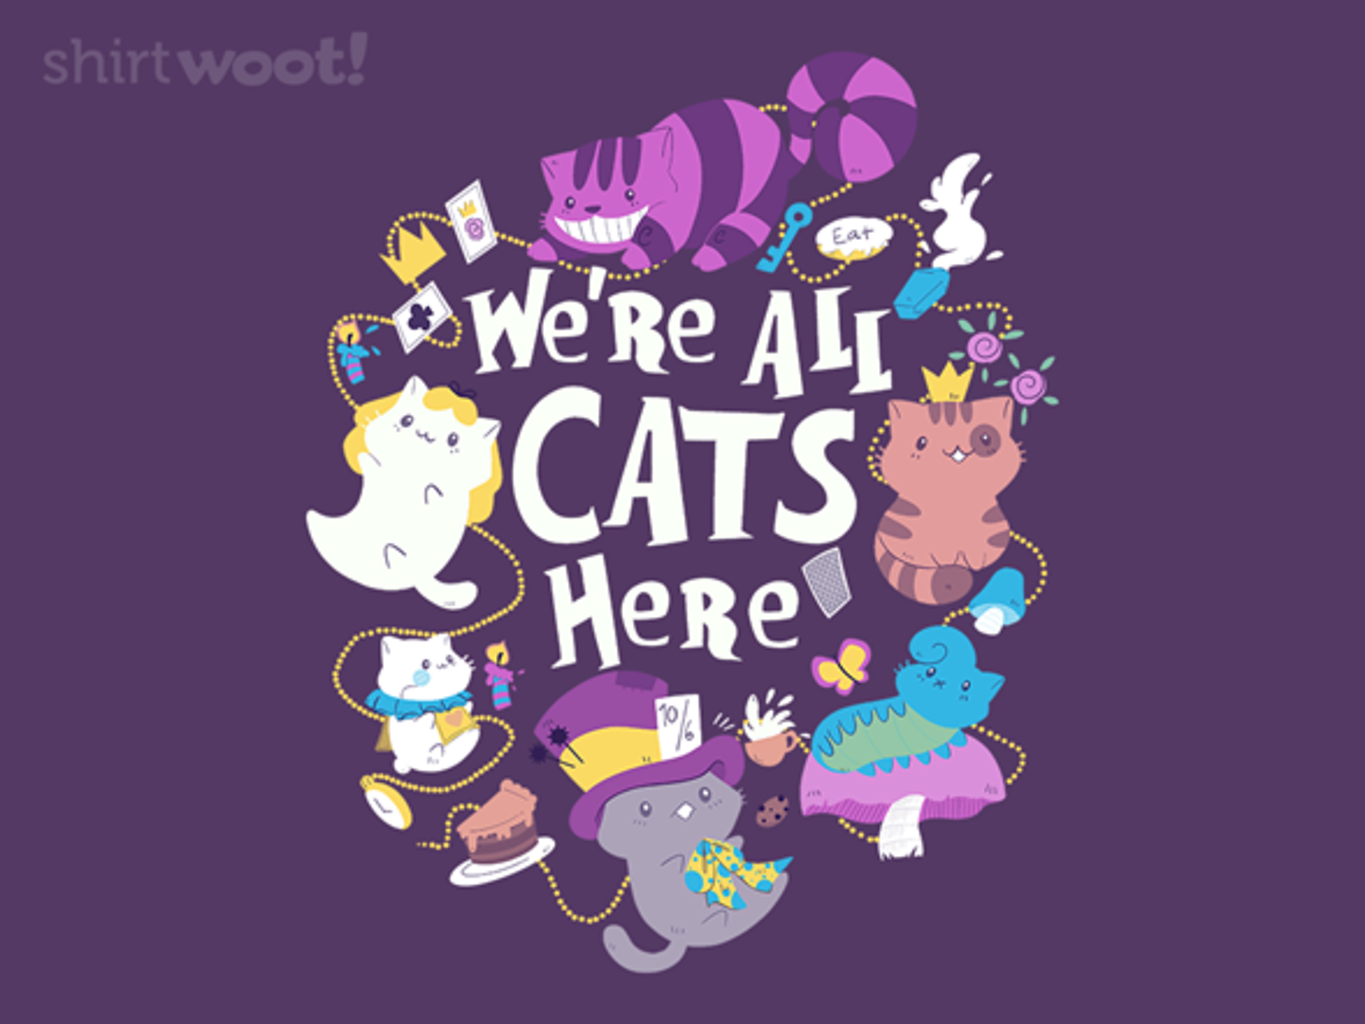 Woot!: We Are All Cats Here